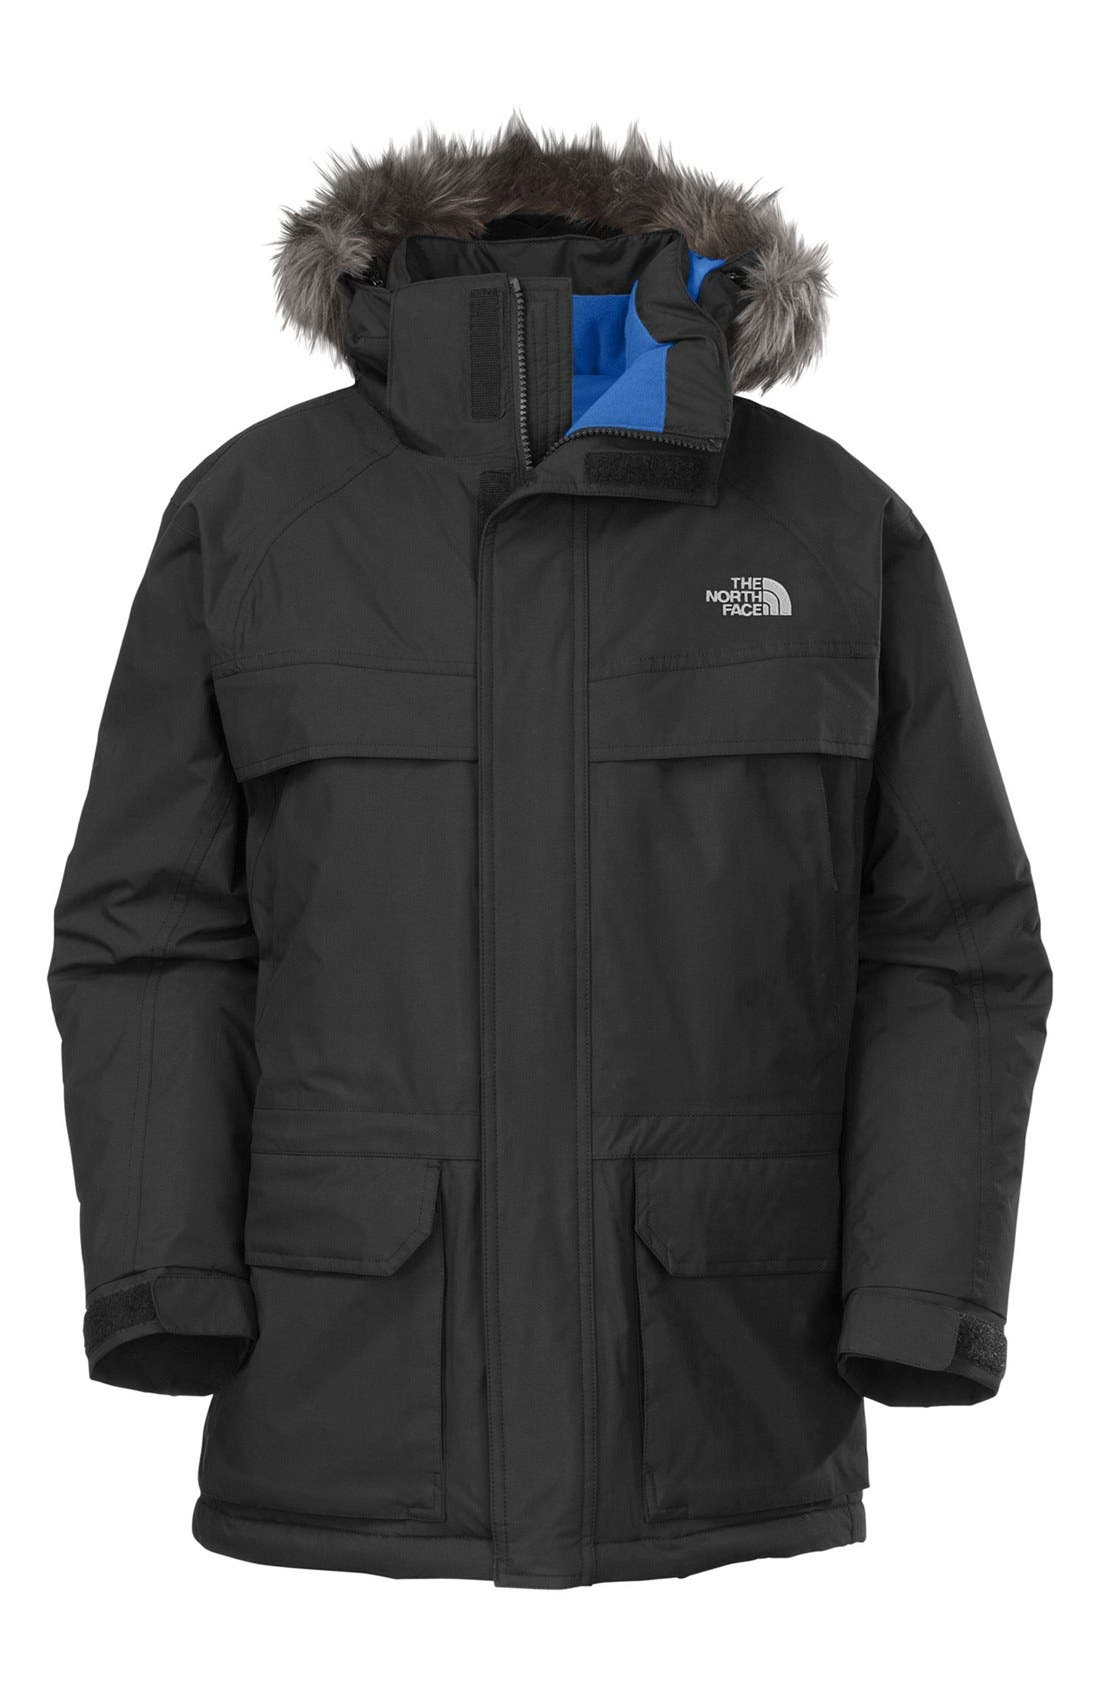 Alternate Image 1 Selected - The North Face 'McMurdo' HyVent® Waterproof Heatseeker Parka with Faux Fur Trim (Big Boys)